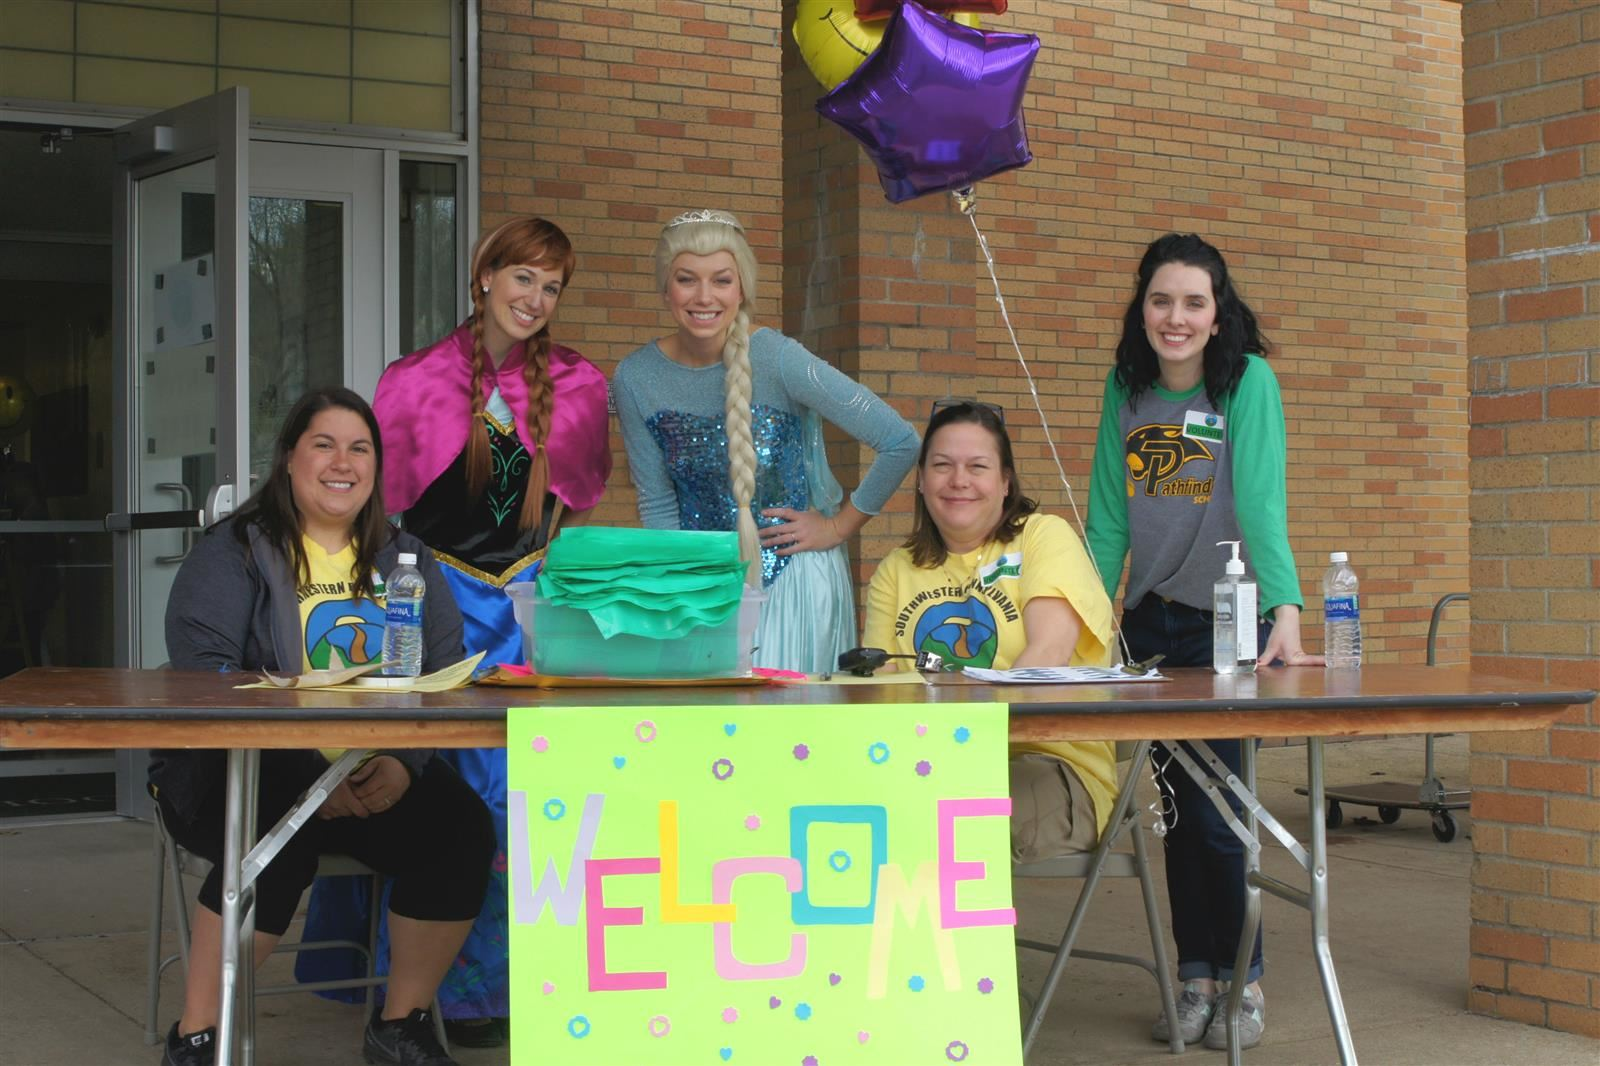 Special needs expo welcome desk.